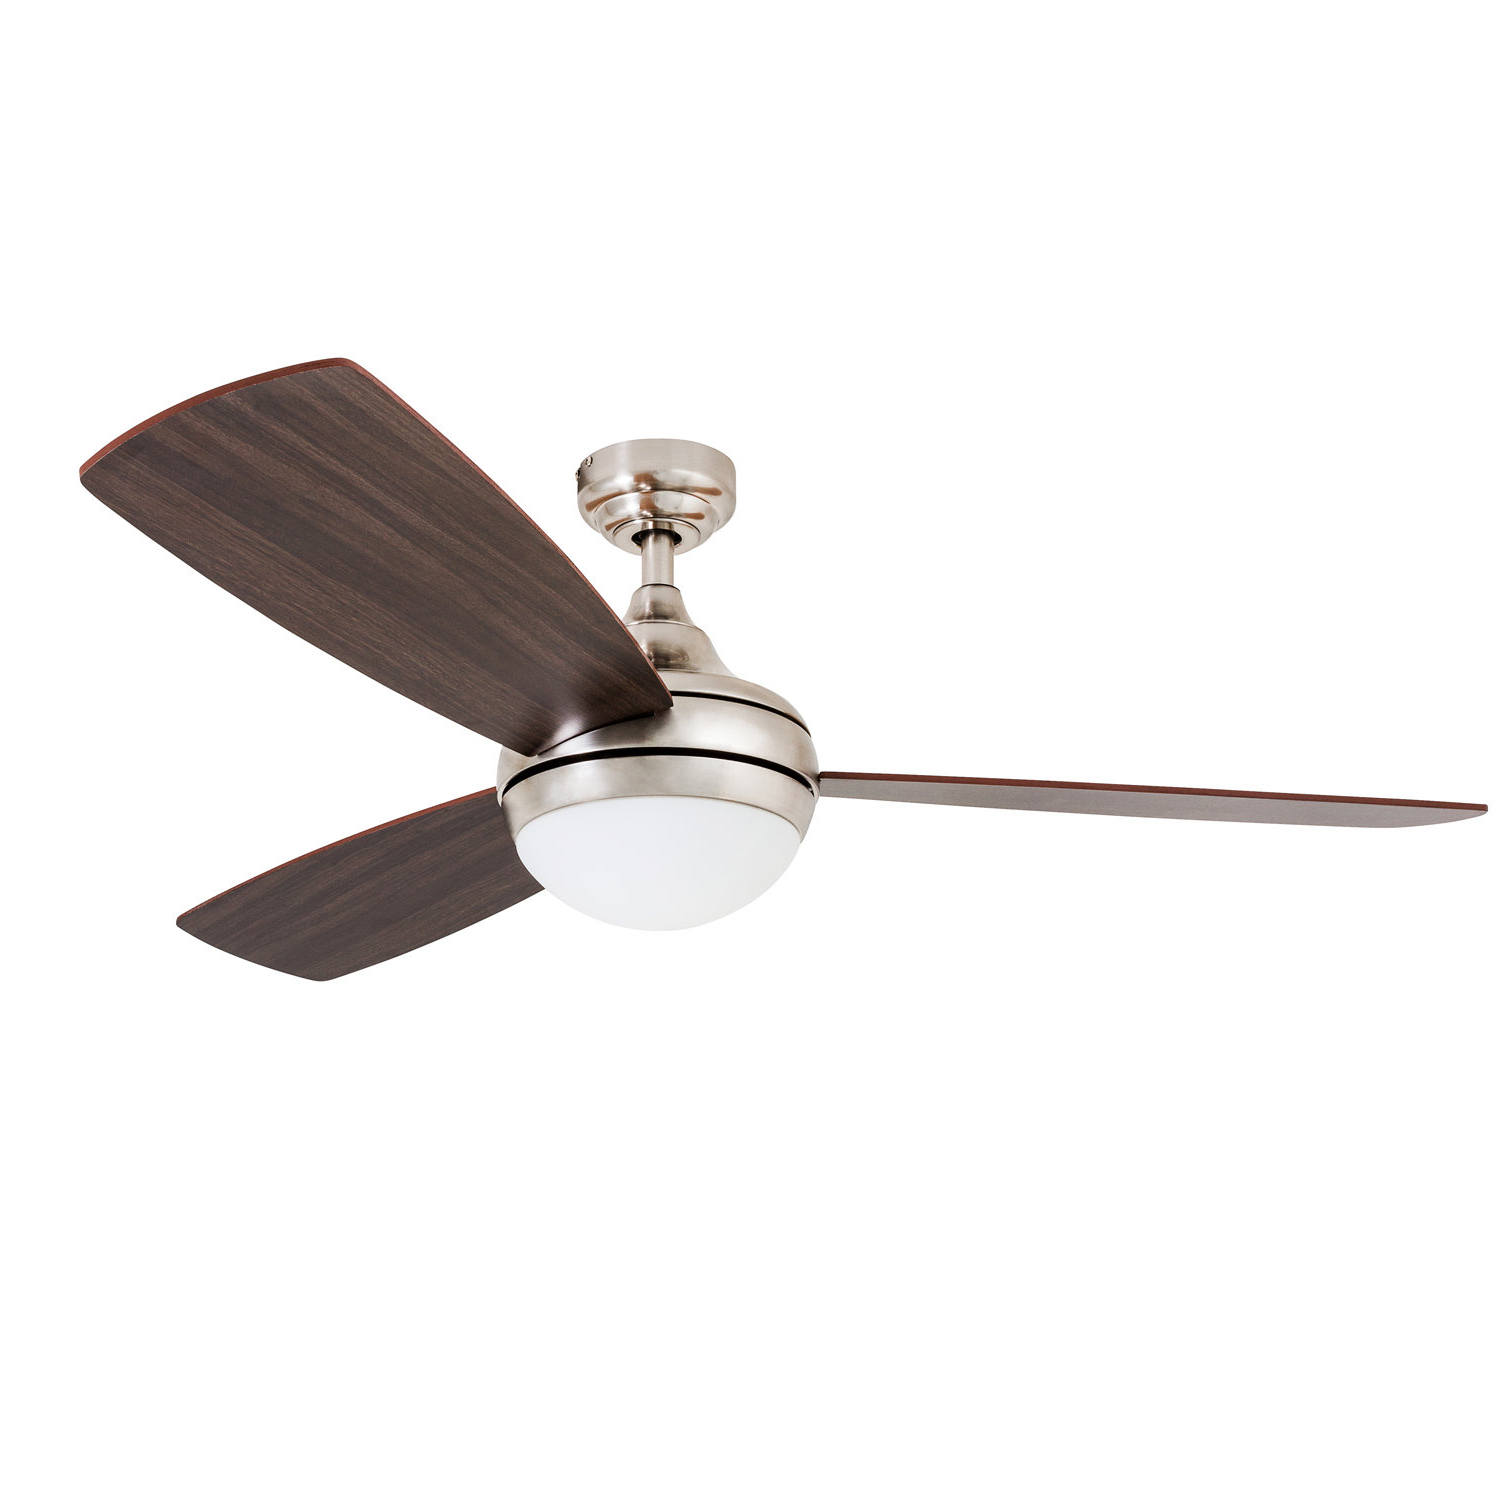 "Wrought Studio 52"" Alyce 3 Blade Led Ceiling Fan With Remote Control With Regard To Newest Alyce 3 Blade Led Ceiling Fans With Remote Control (View 5 of 20)"